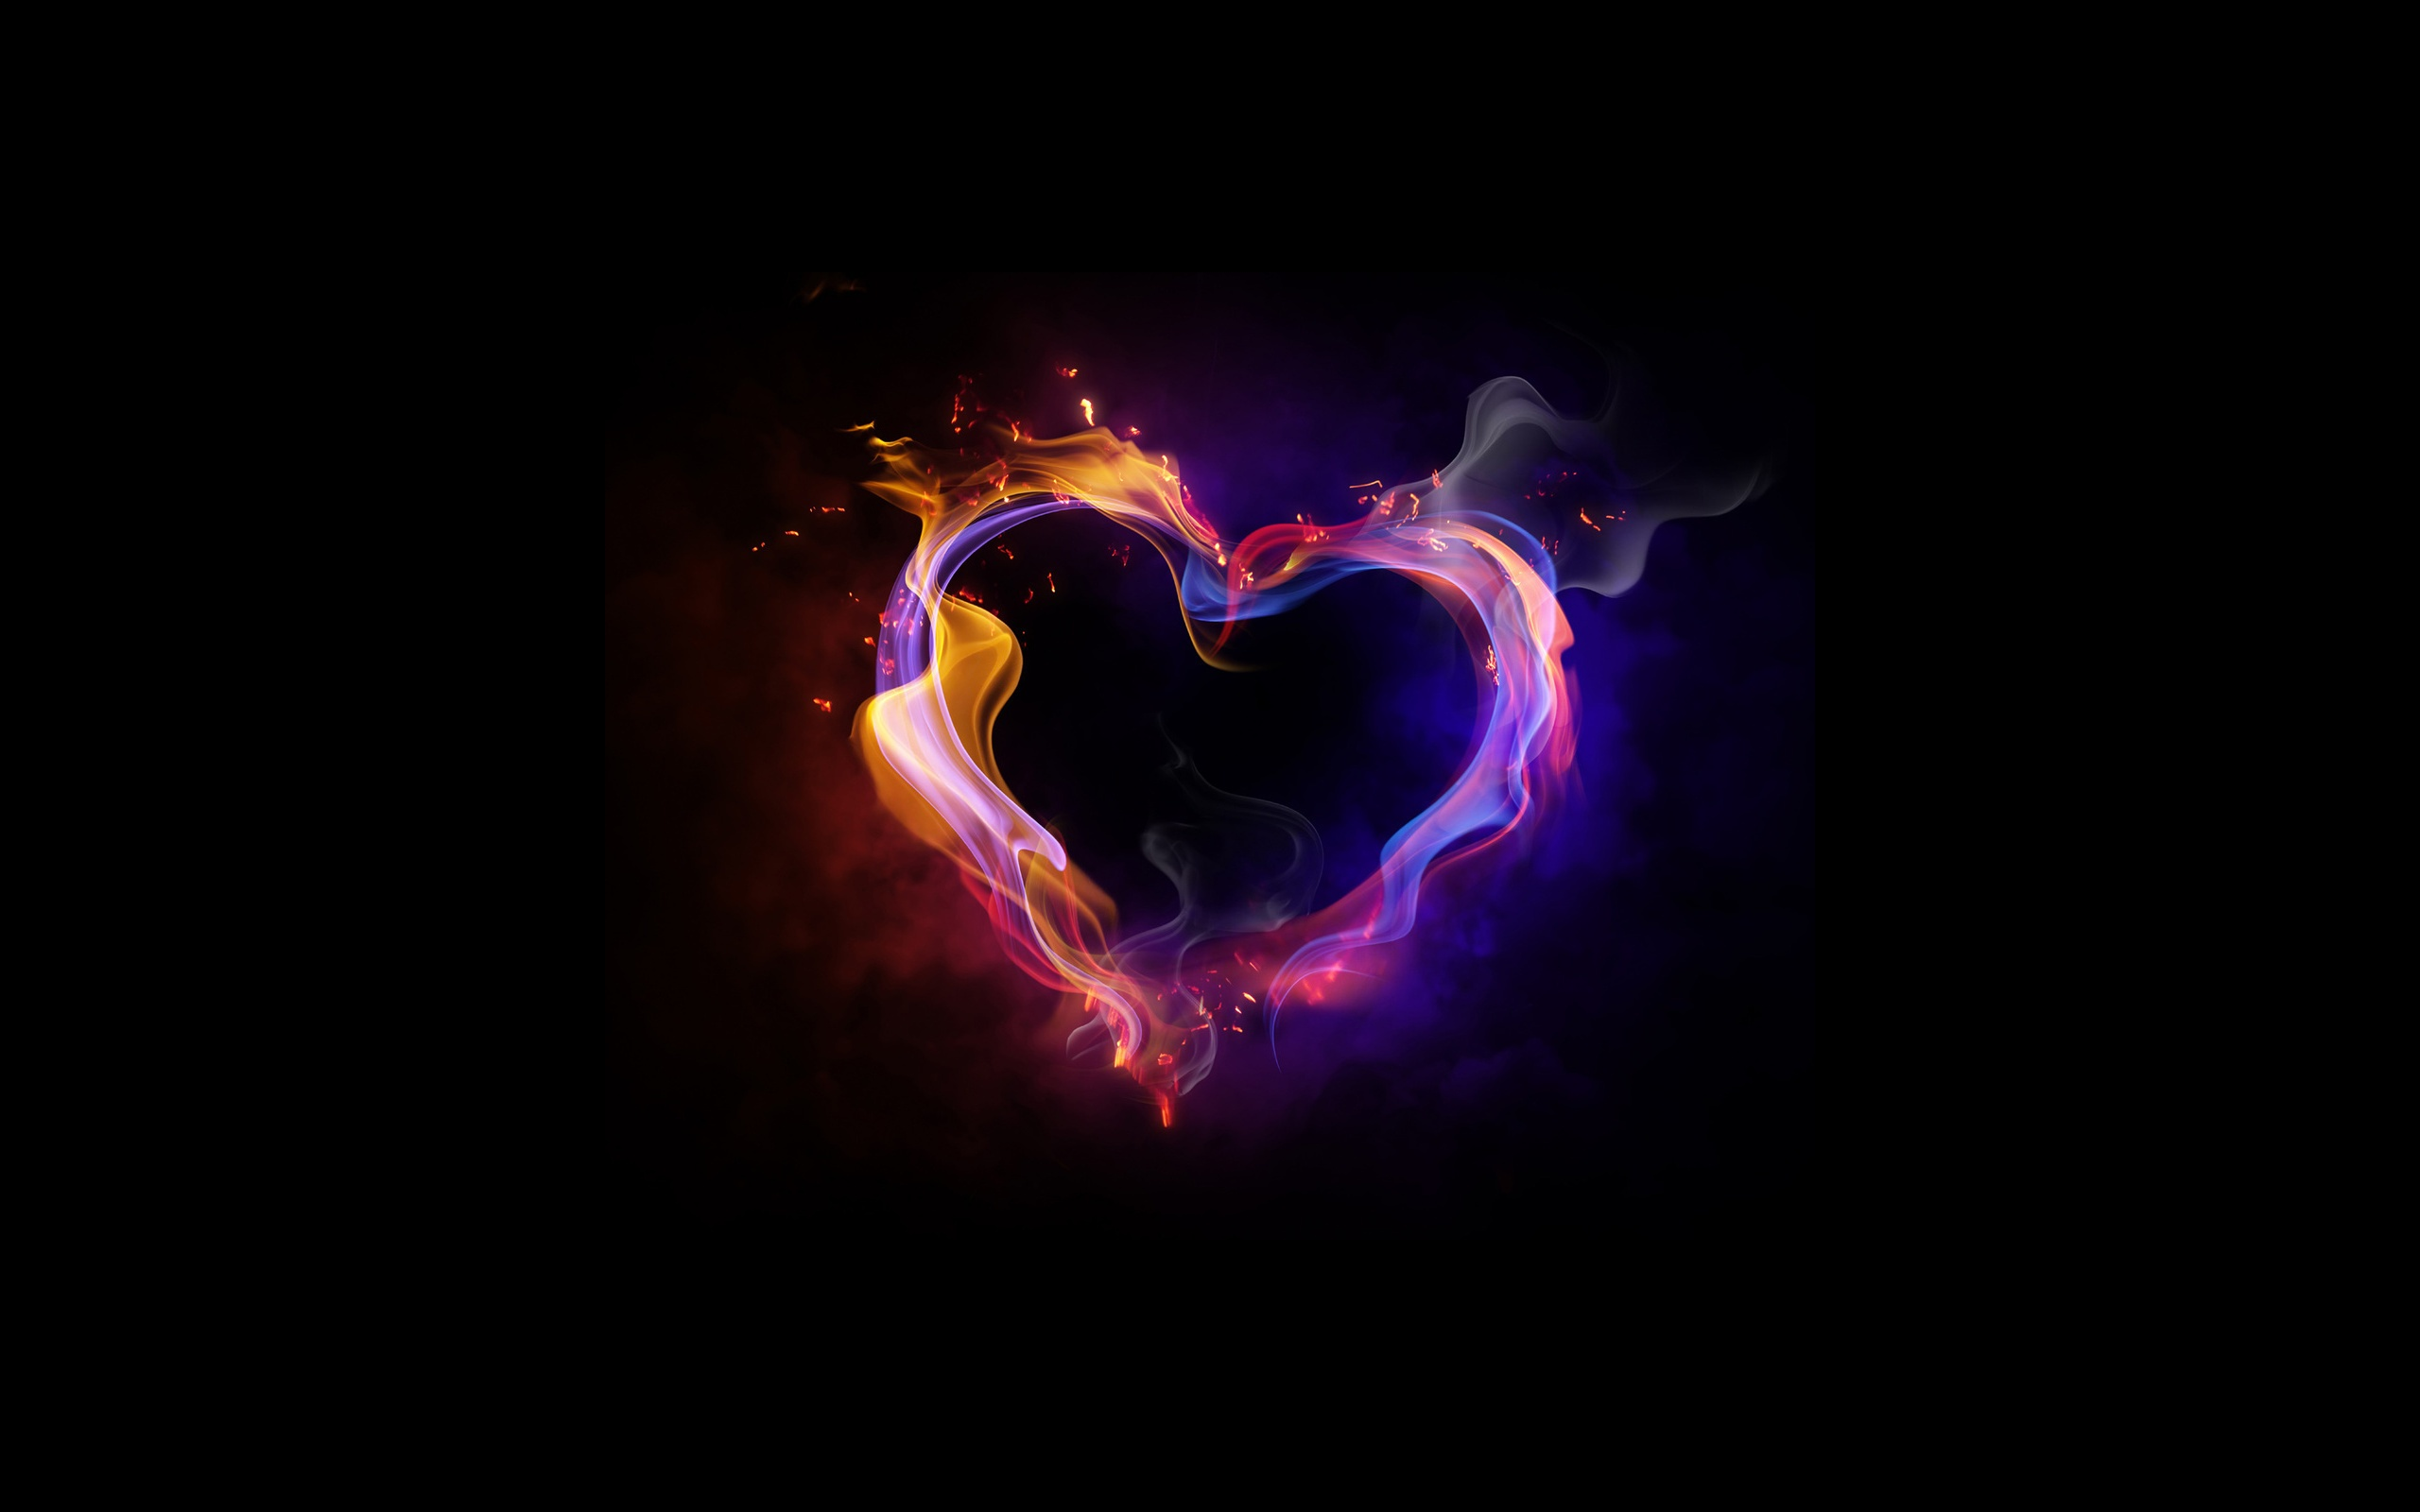 Fire Of Love Wallpaper Background 6987993 2560x1600